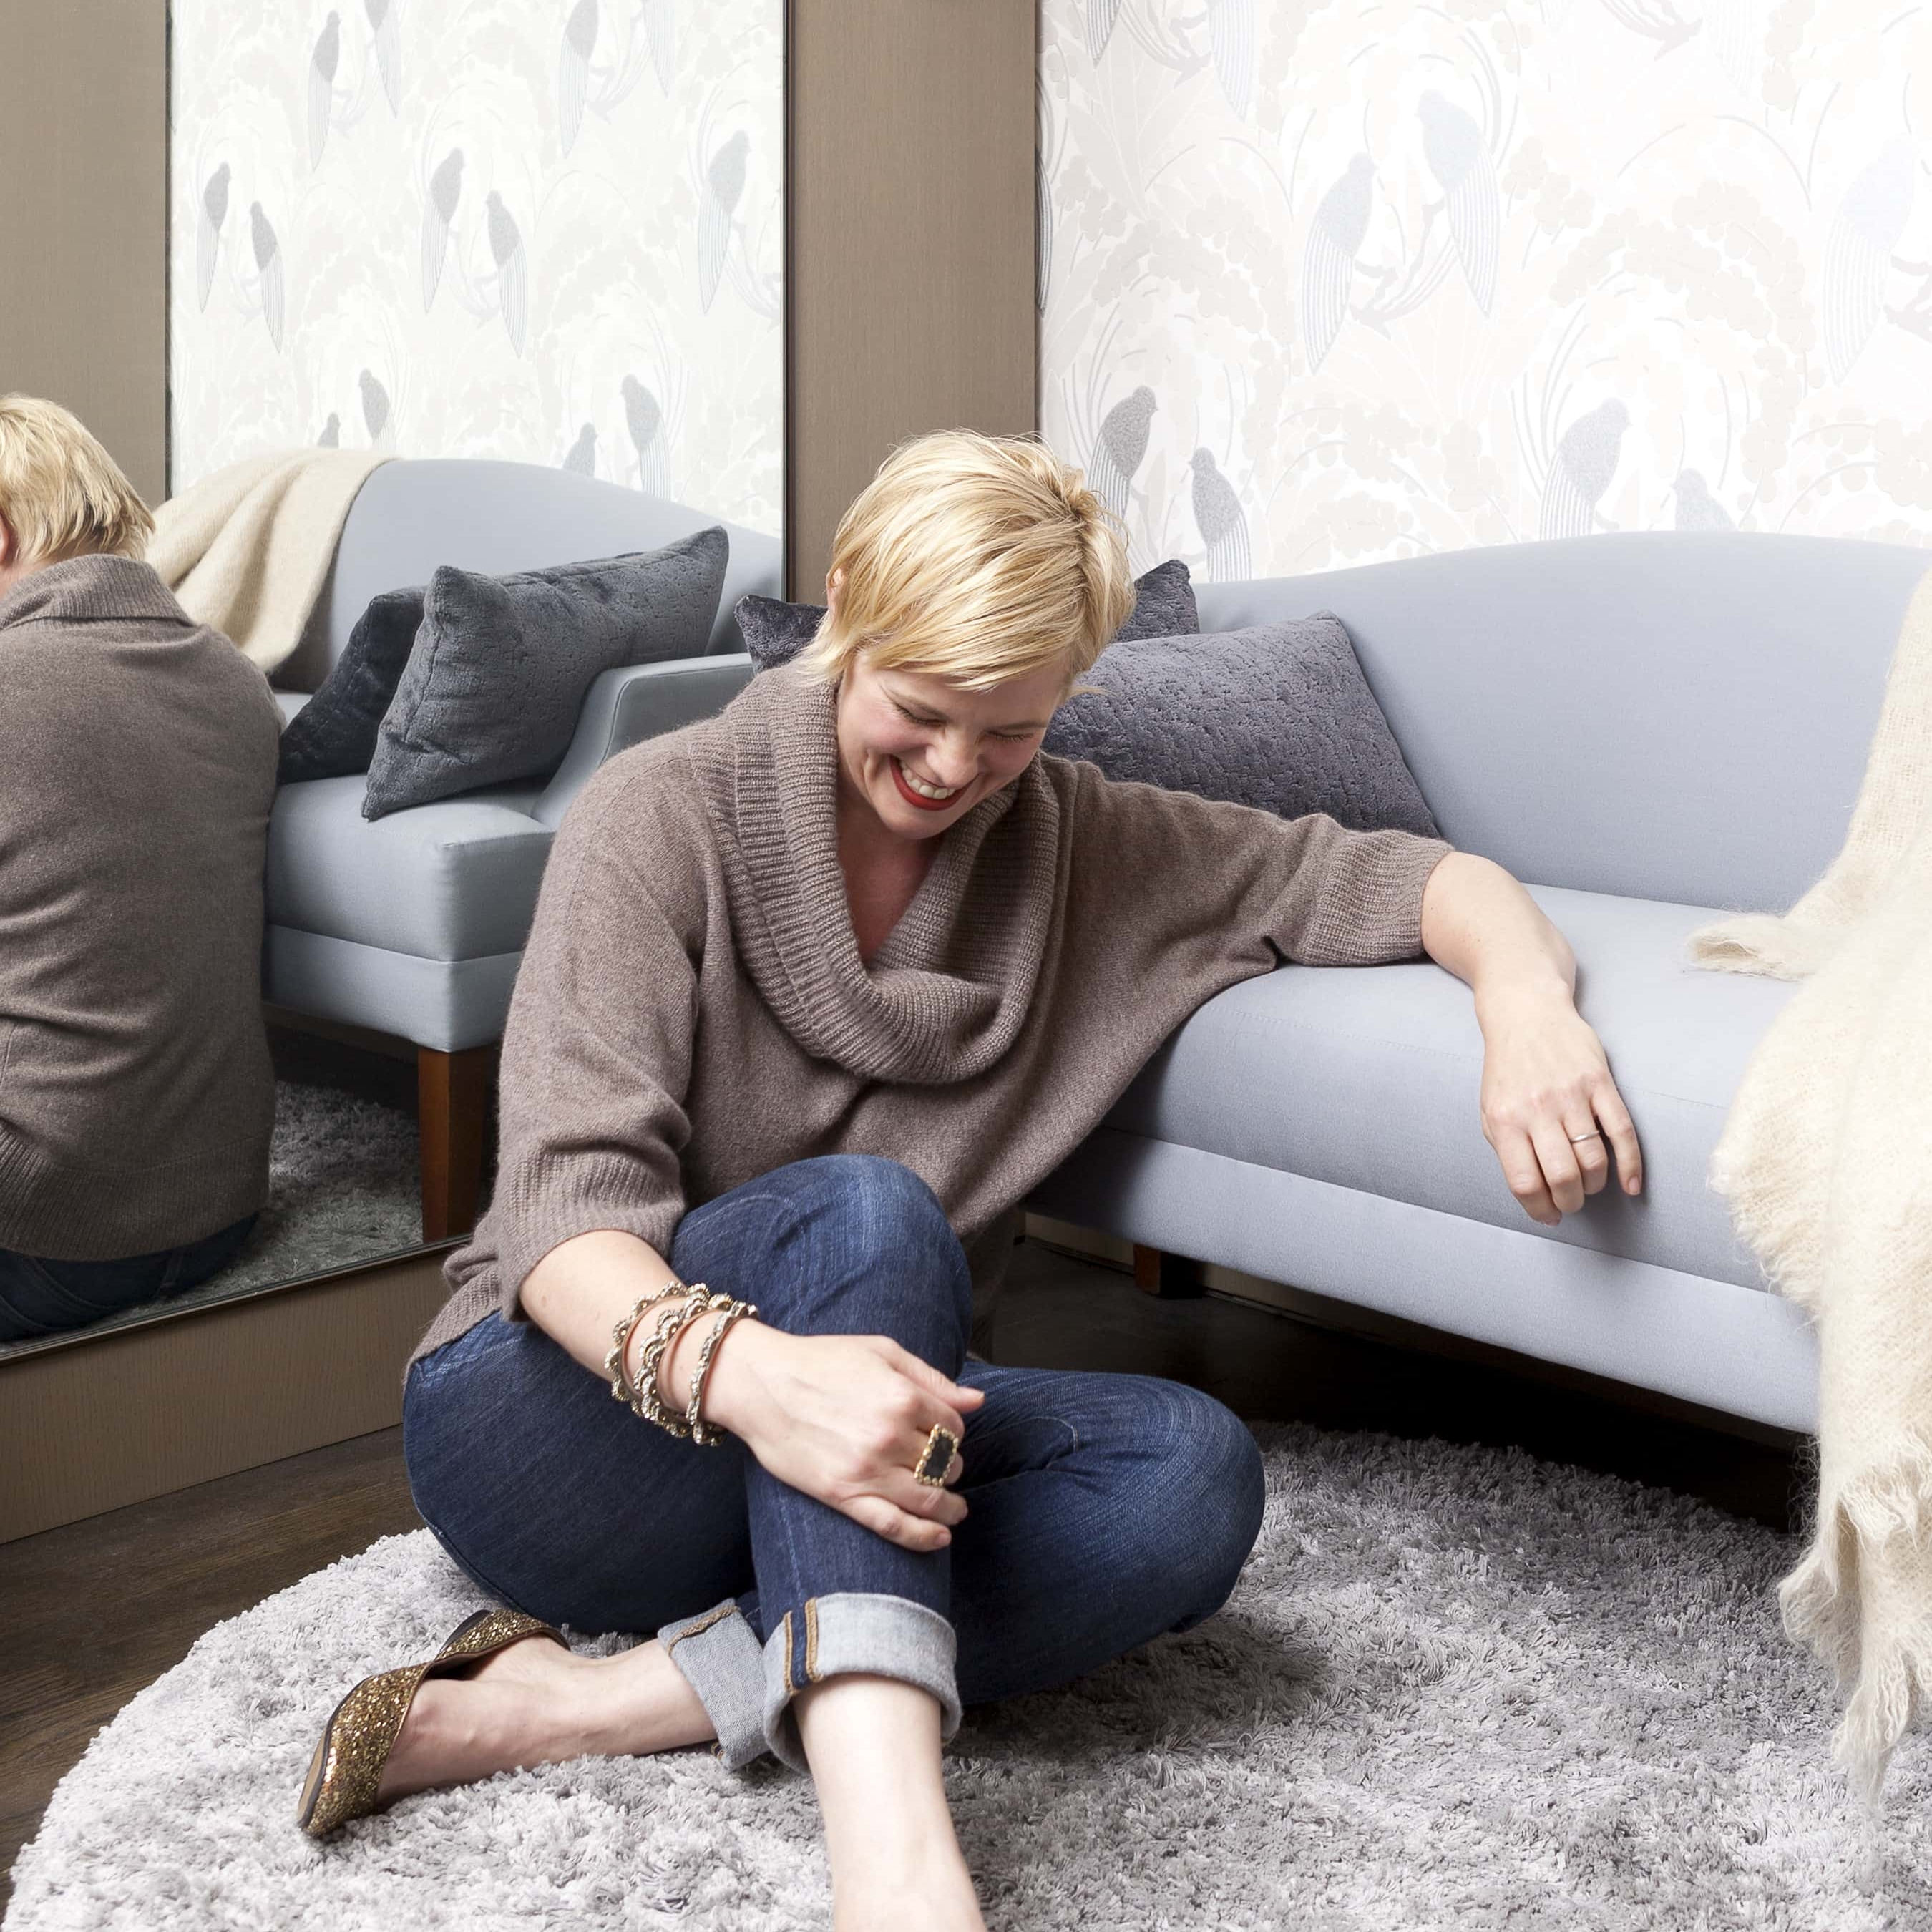 5 myths about interior design – Blog by Darci Hether New York